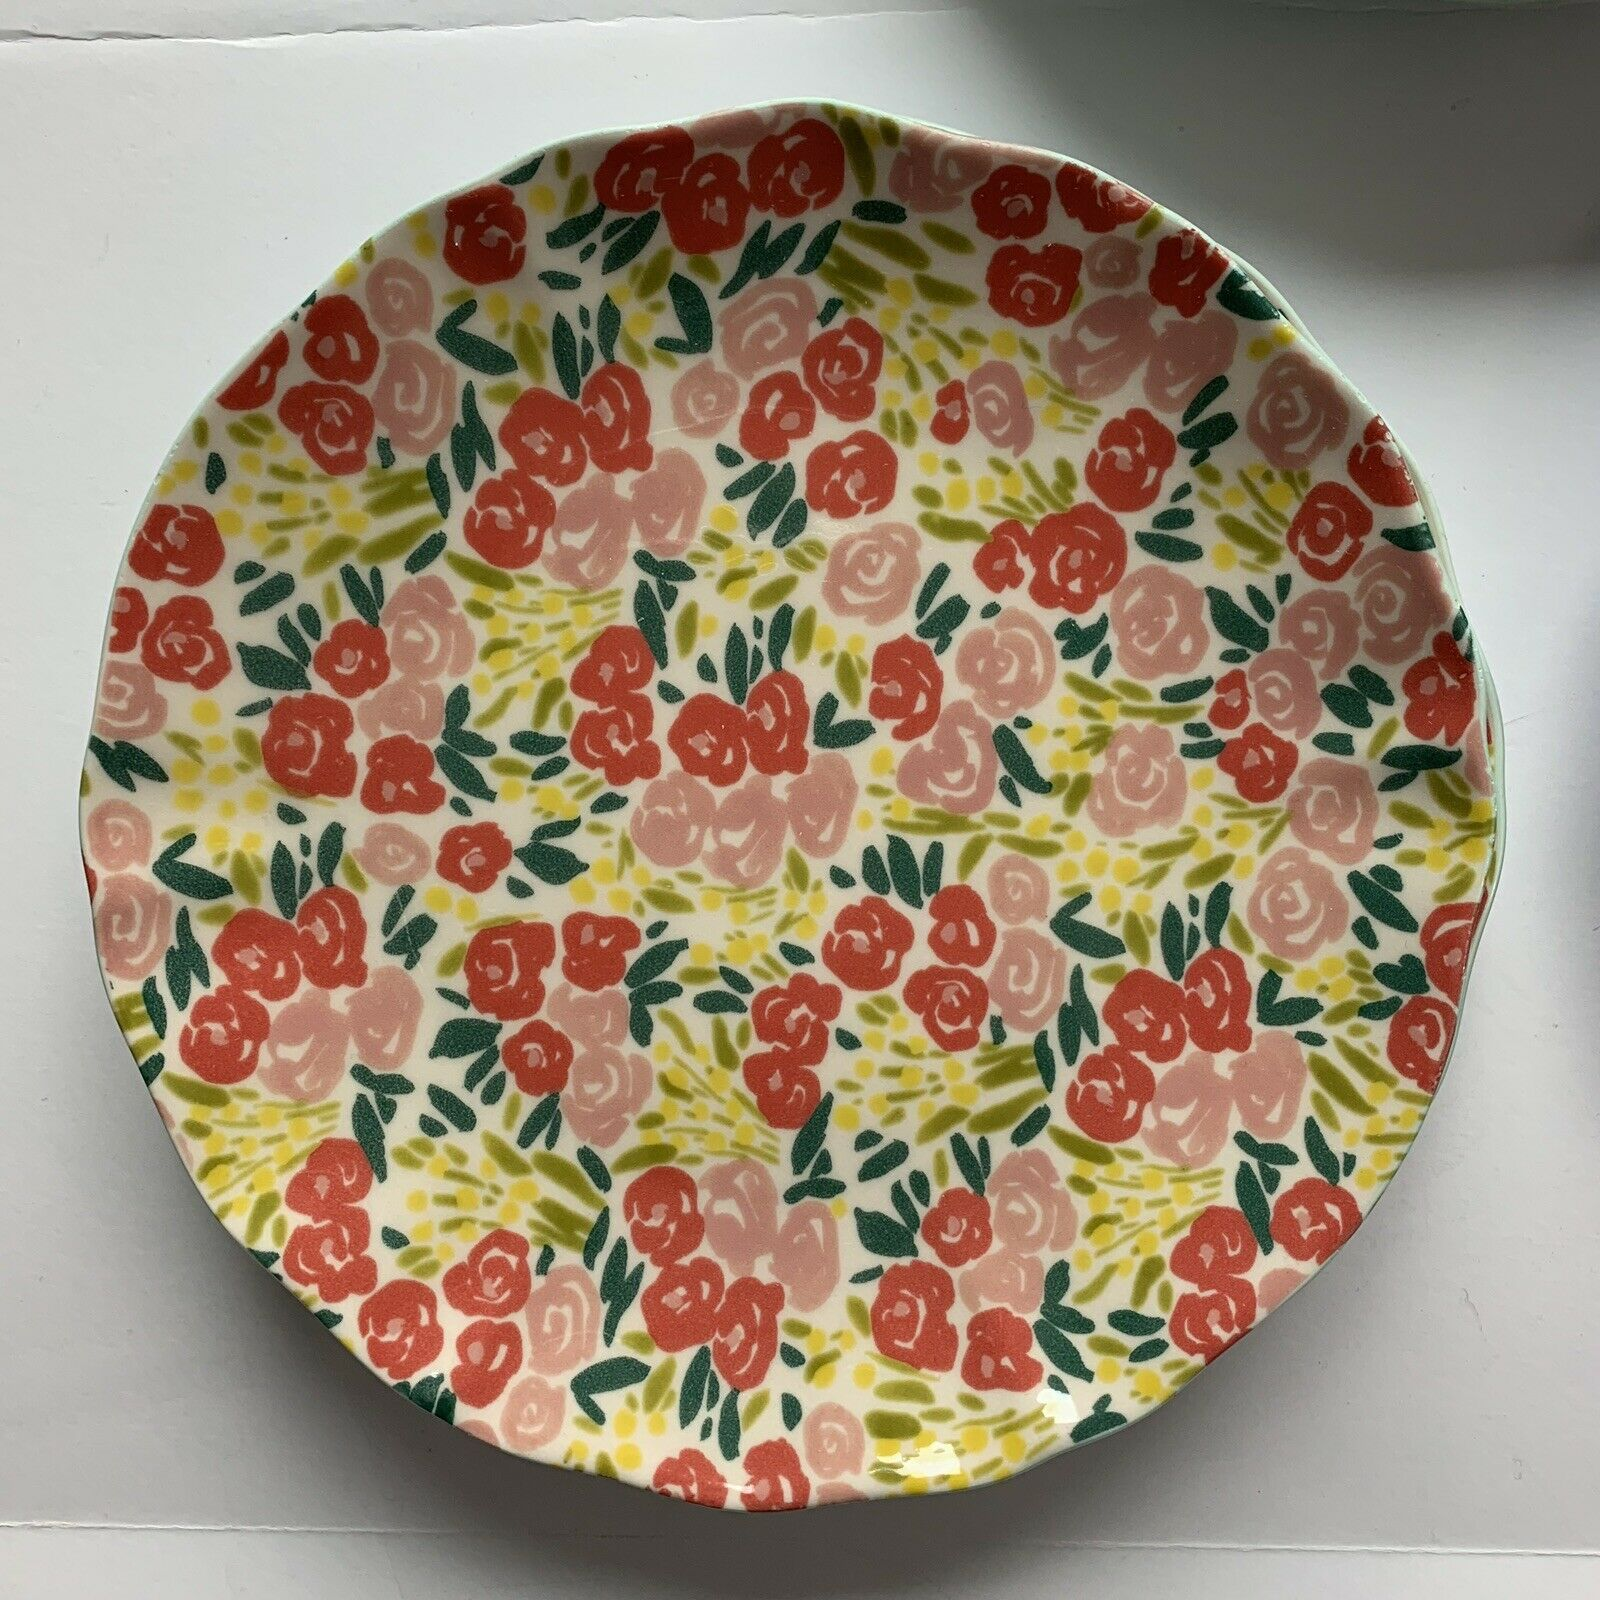 Anthropologie Melamine Set Of 3 Dinner Plates Floral Flowers